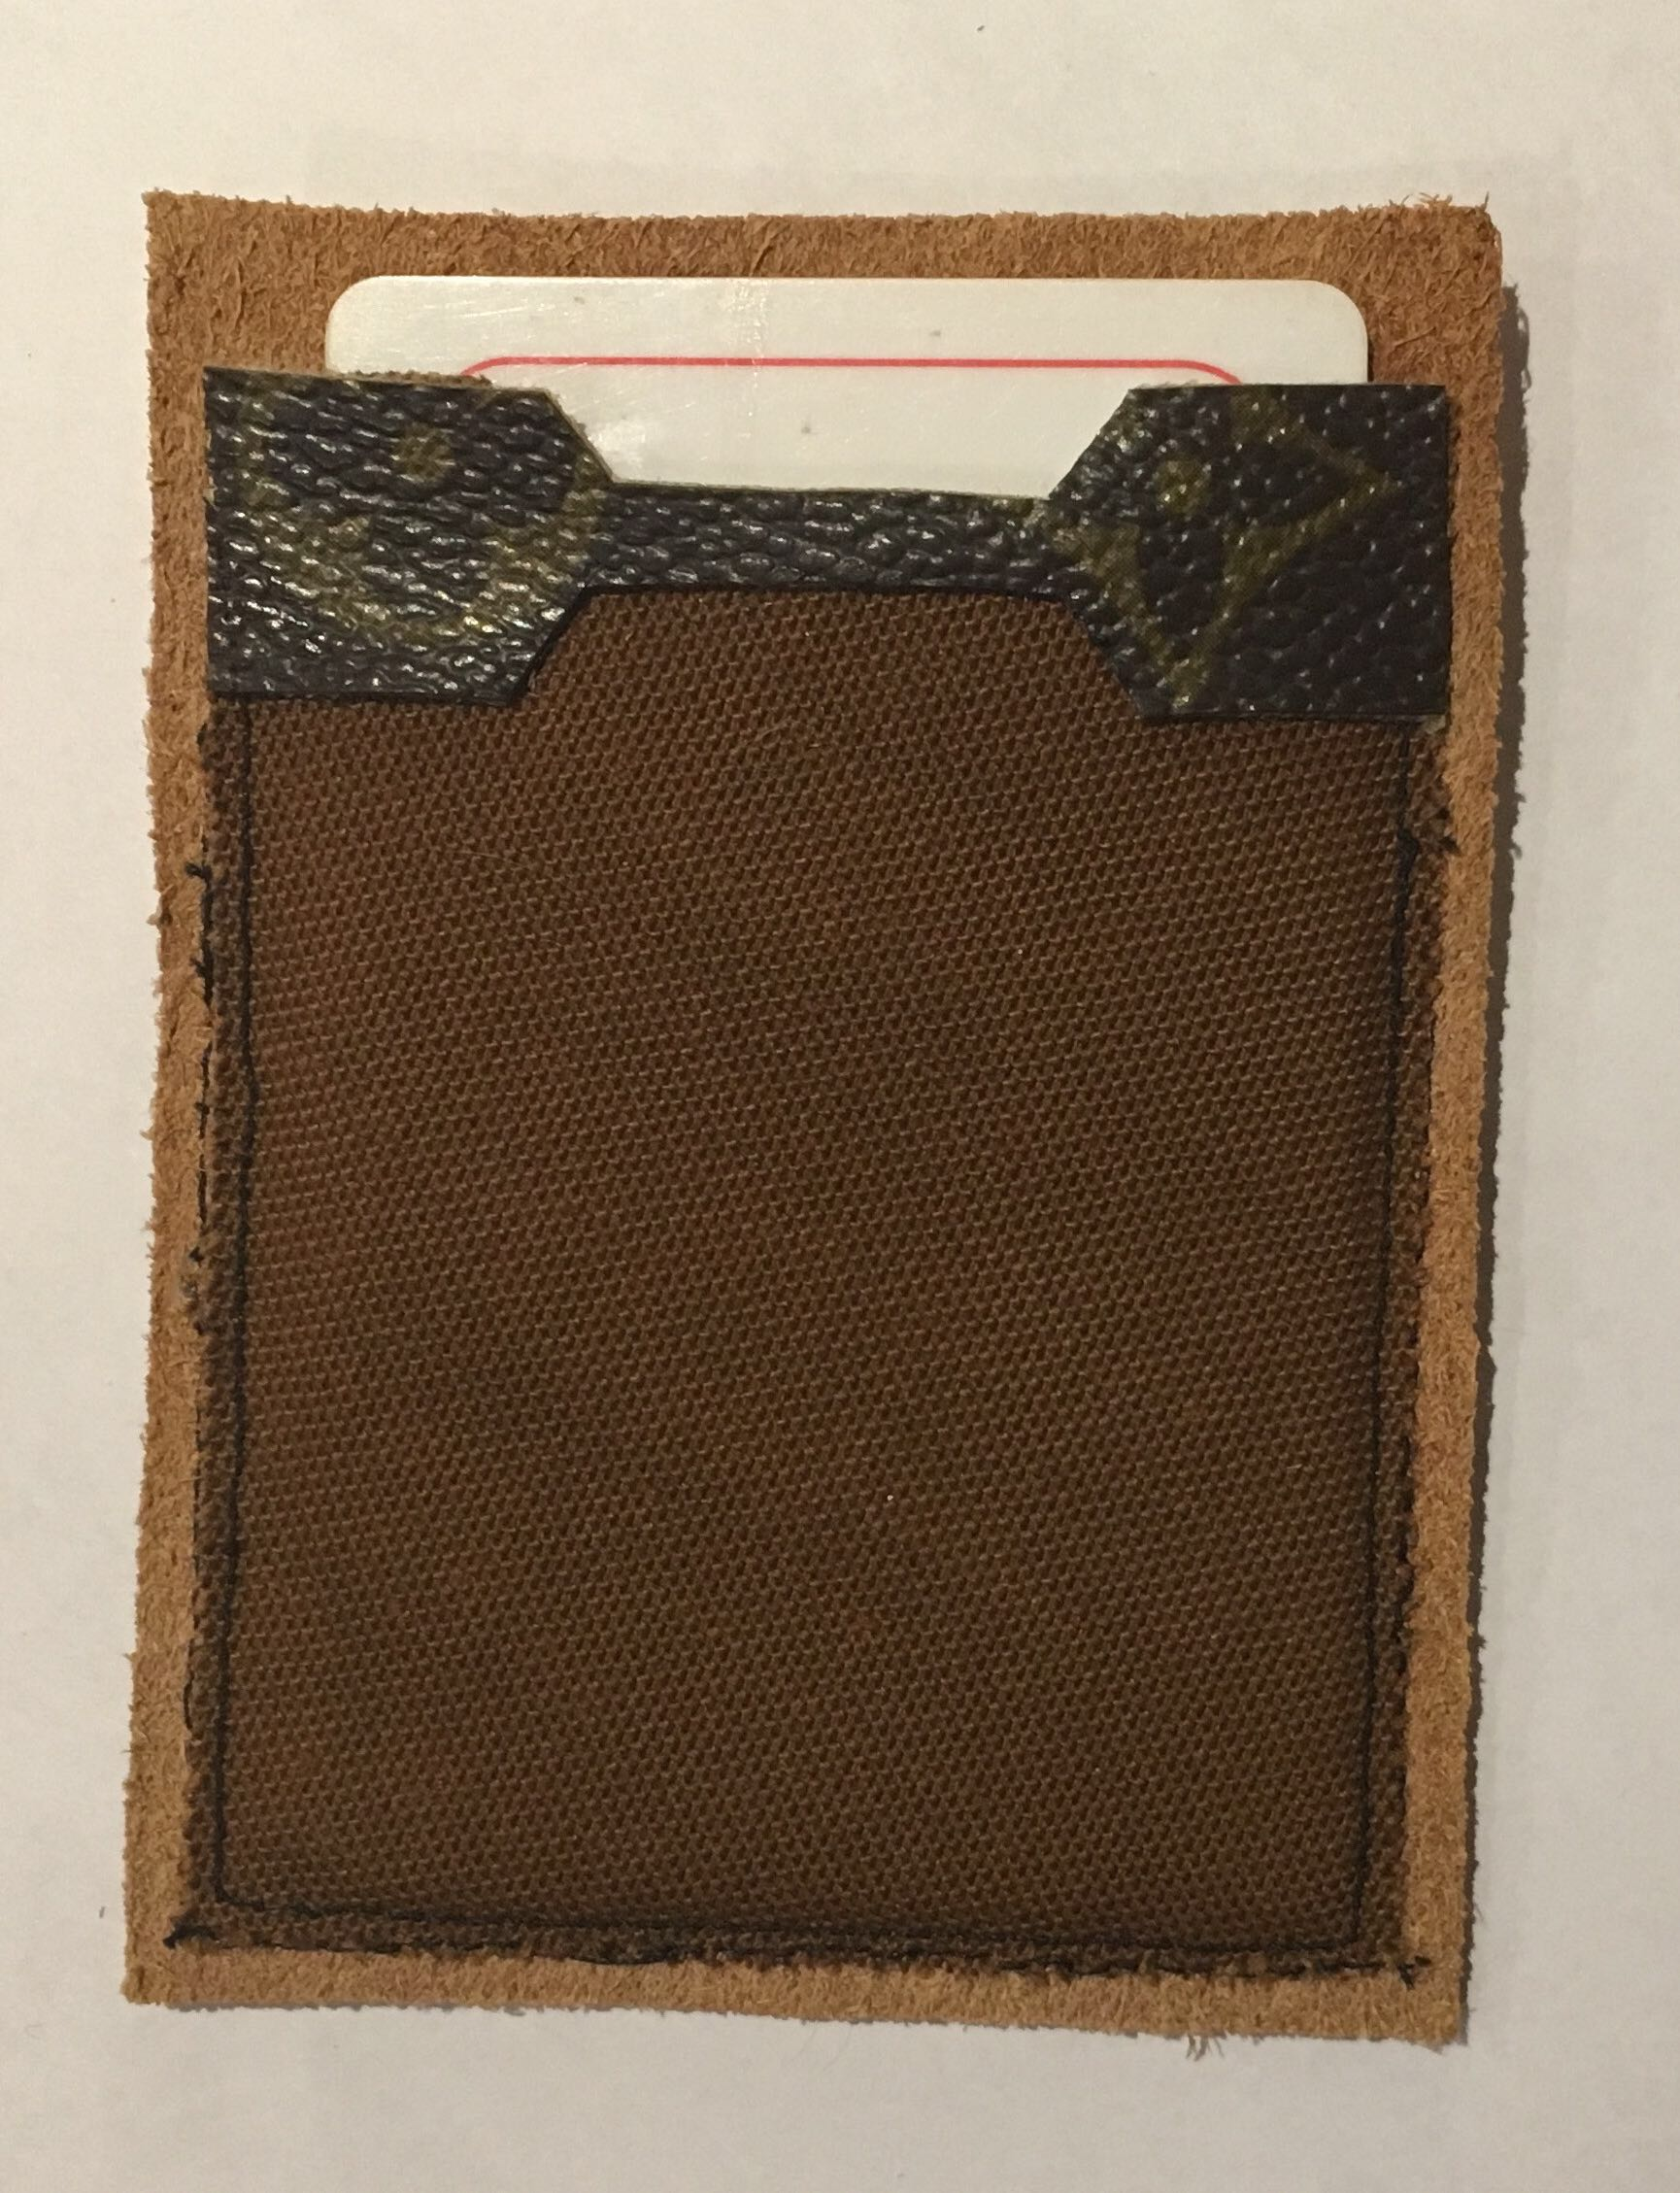 *Upcycled* LOUIS VUITTON Card/Money Holder